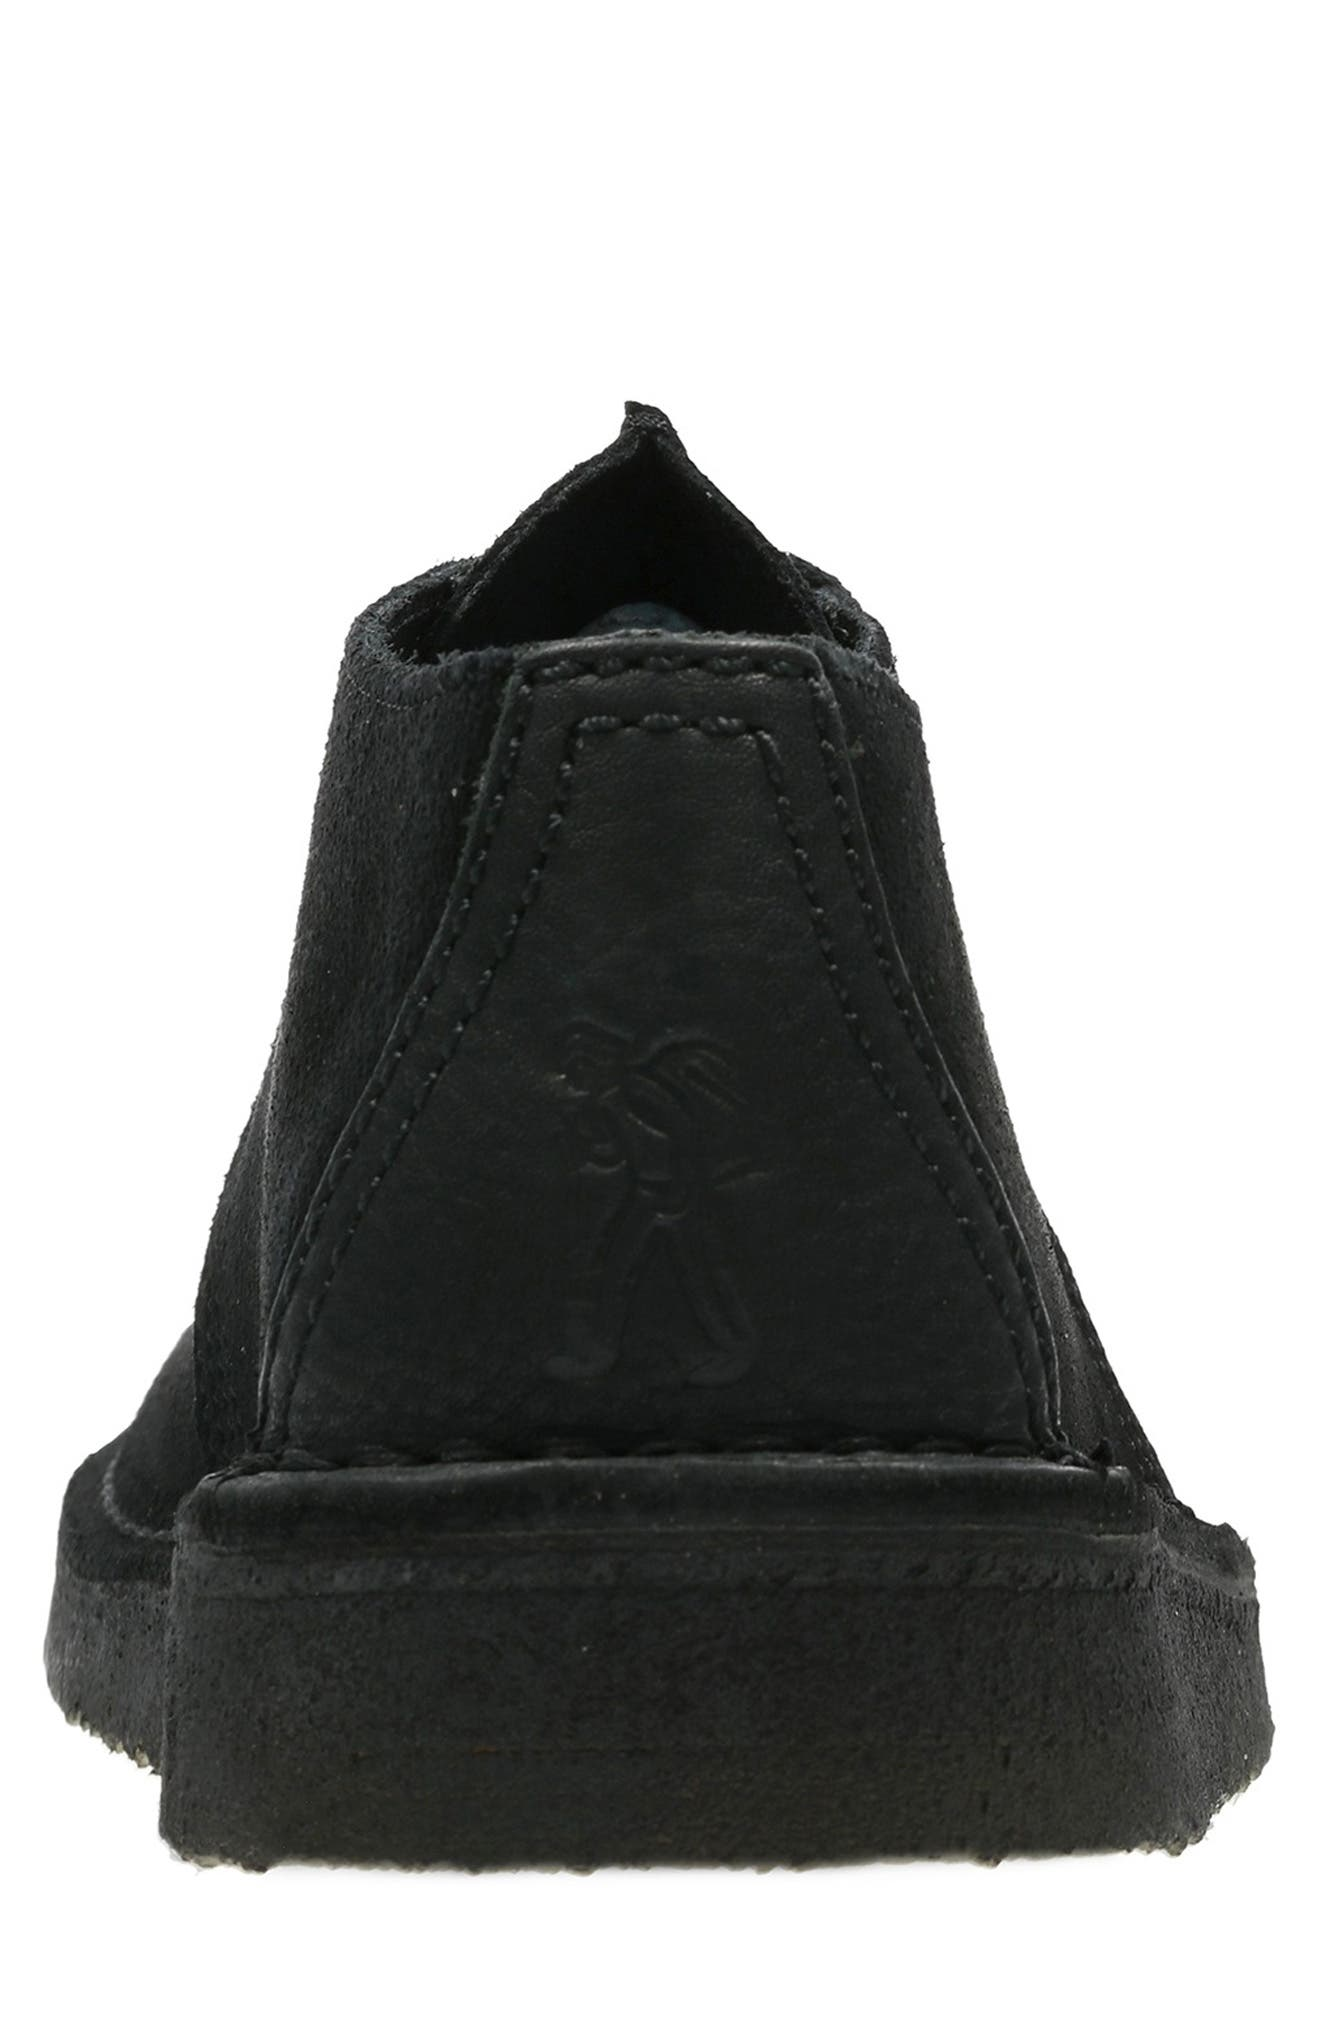 Originals 'Desert - Trek' Oxford,                             Alternate thumbnail 4, color,                             BLACK/BLACK SUEDE